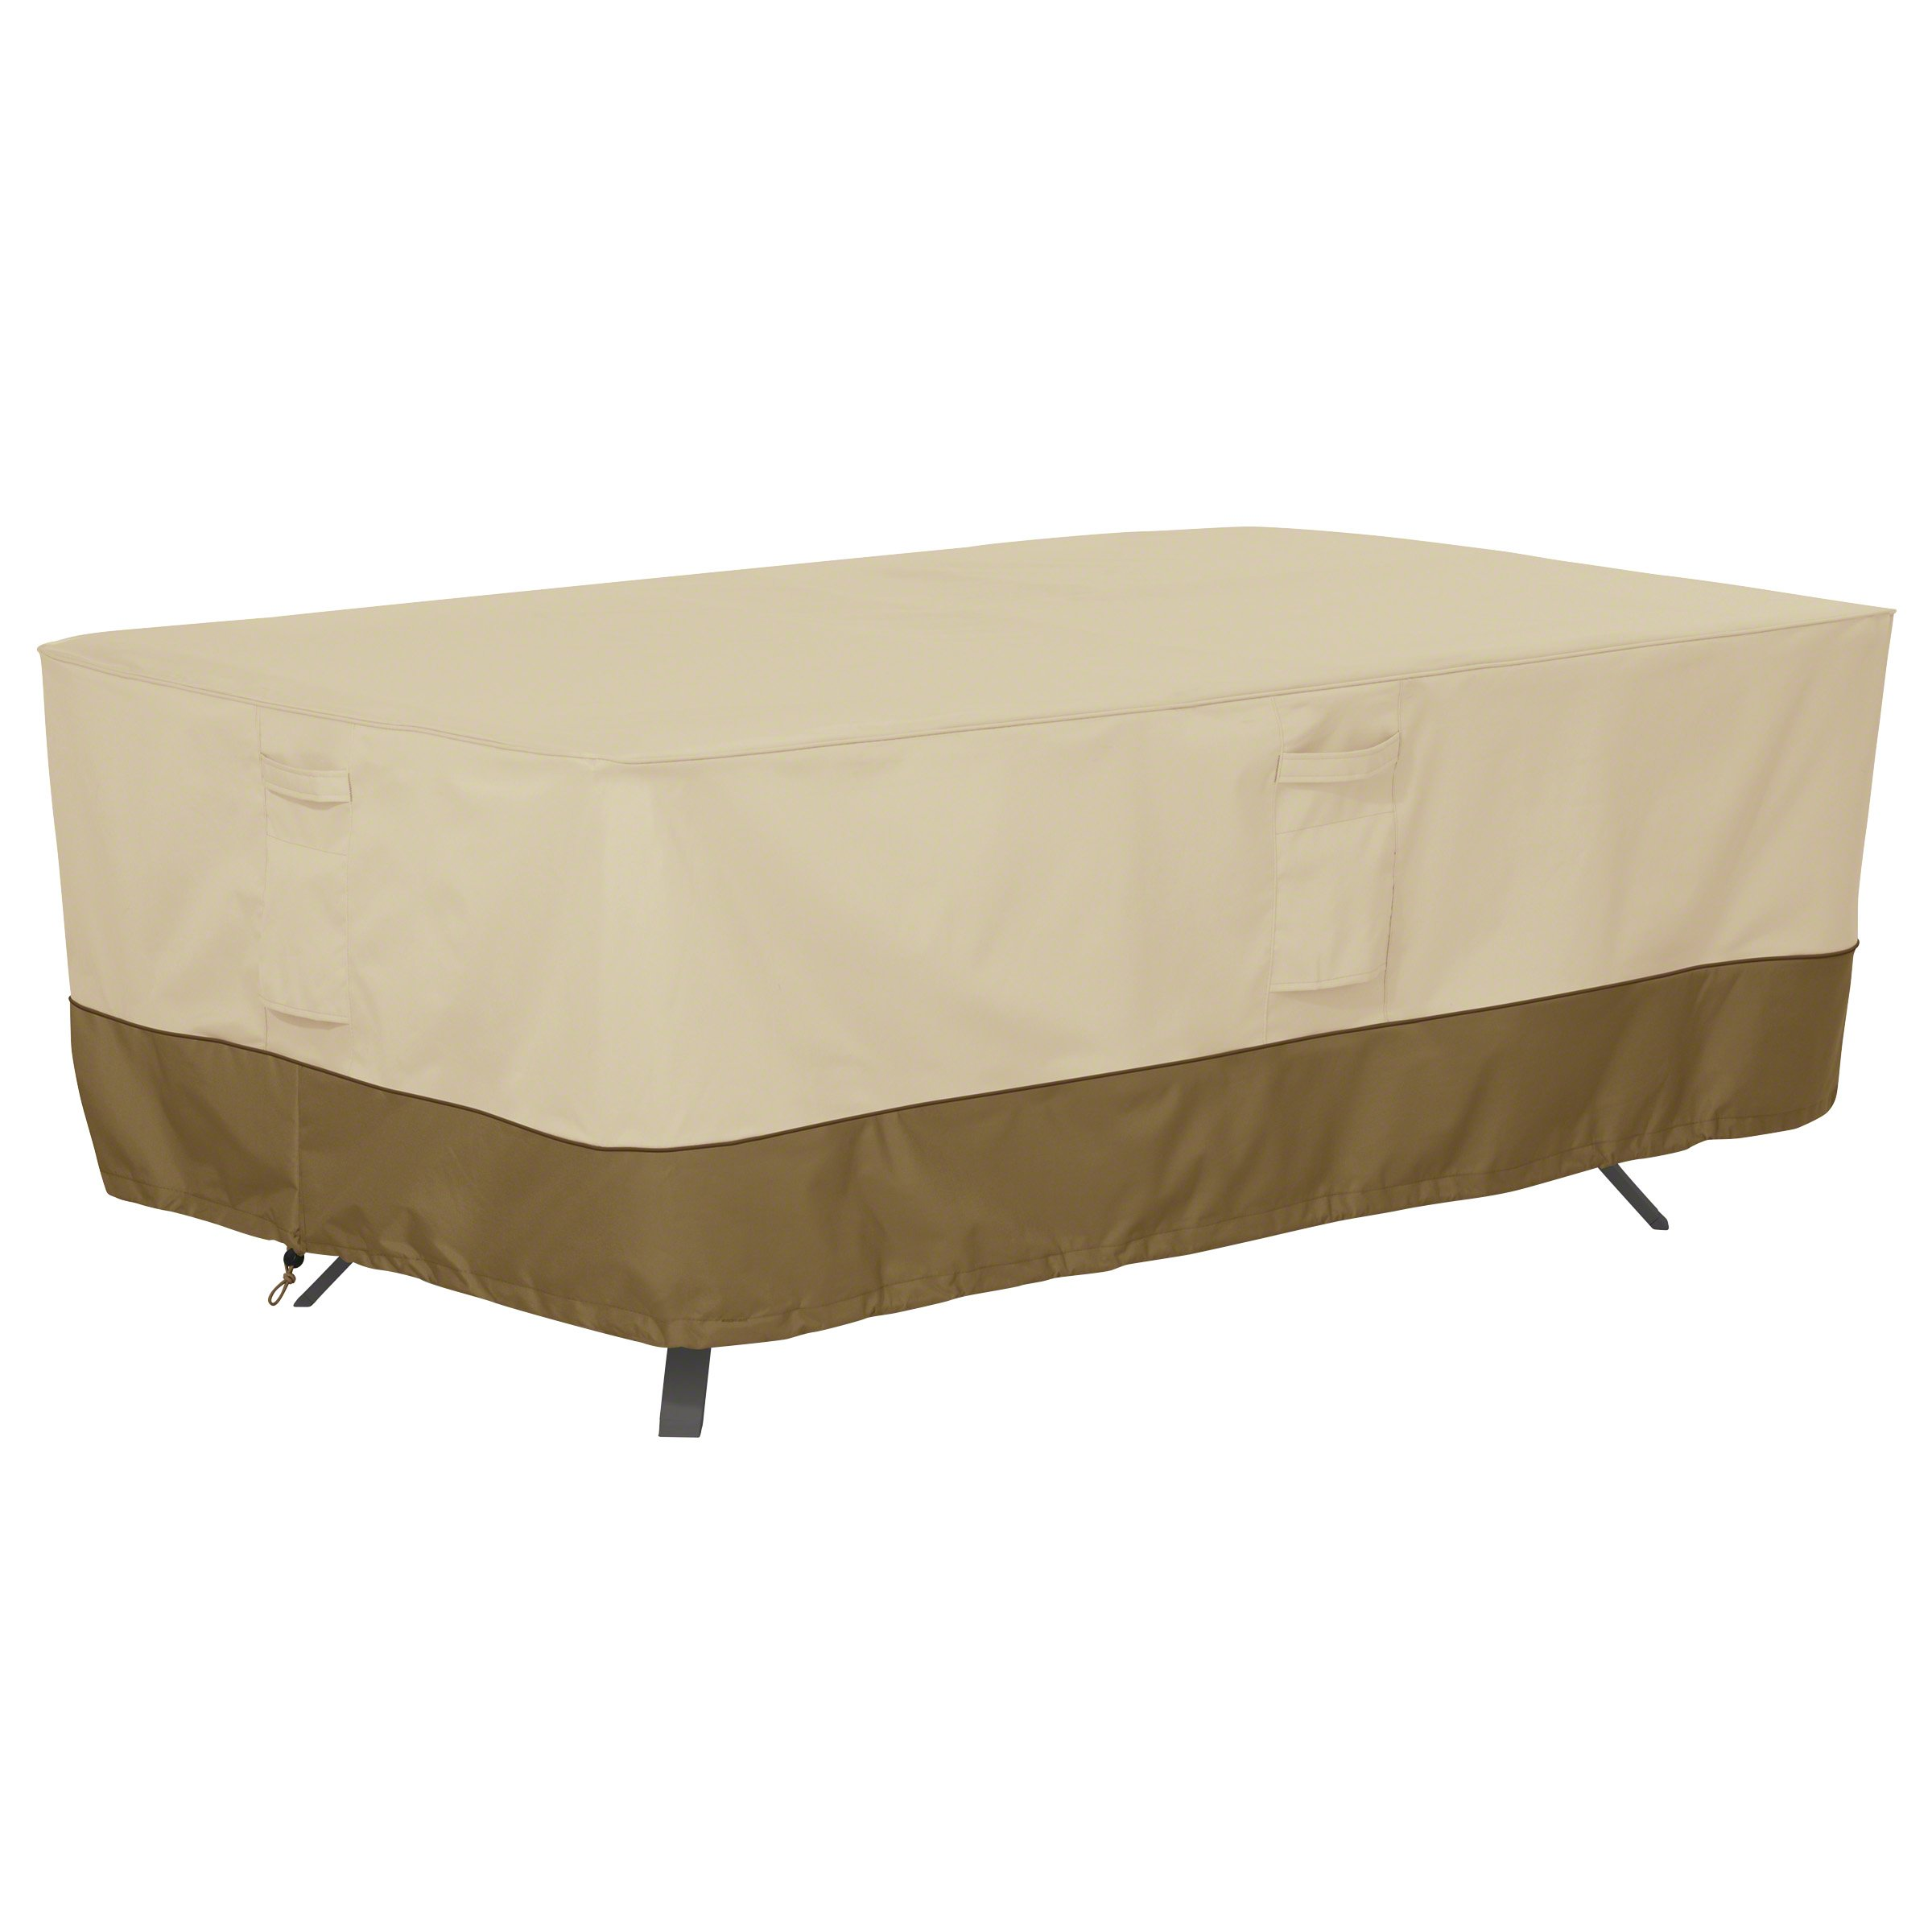 Classic Accessories Veranda Rectangular/Oval Patio Table Cover, X-Large by Classic Accessories